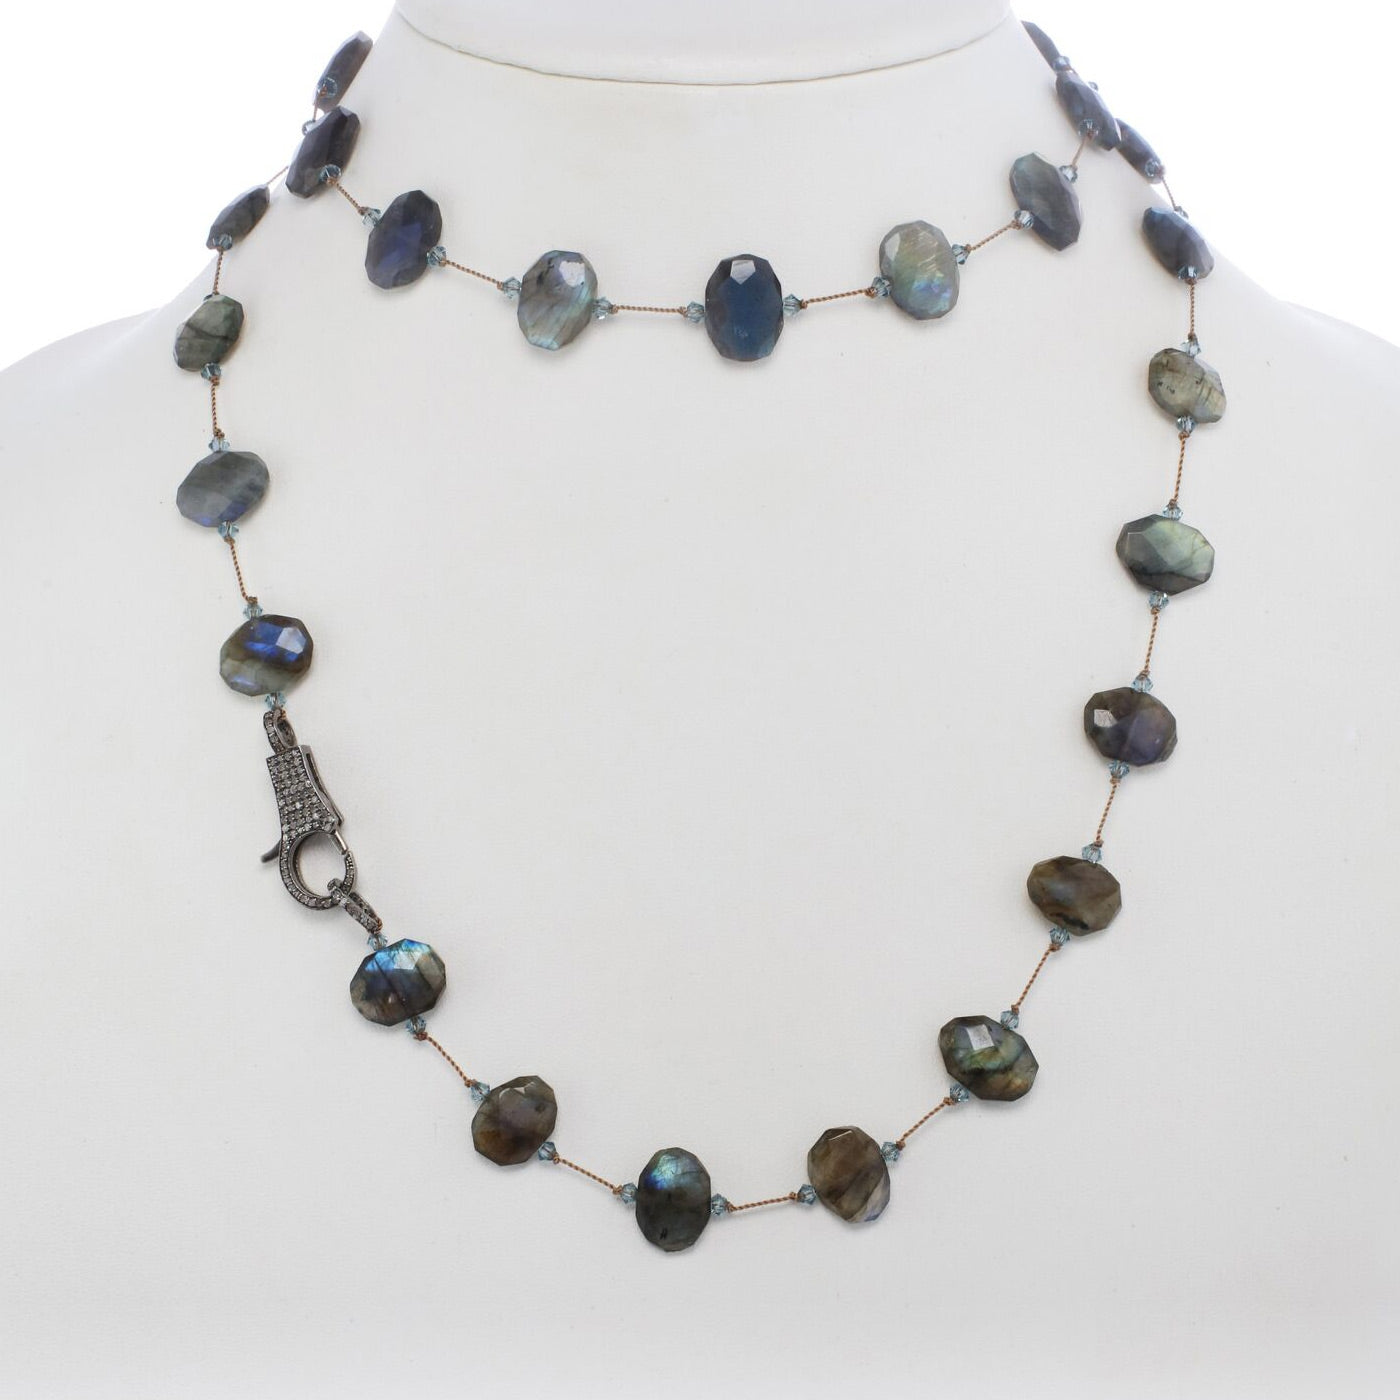 Faceted Flat Labradorite Necklace, 35 Inches, Sterling Silver